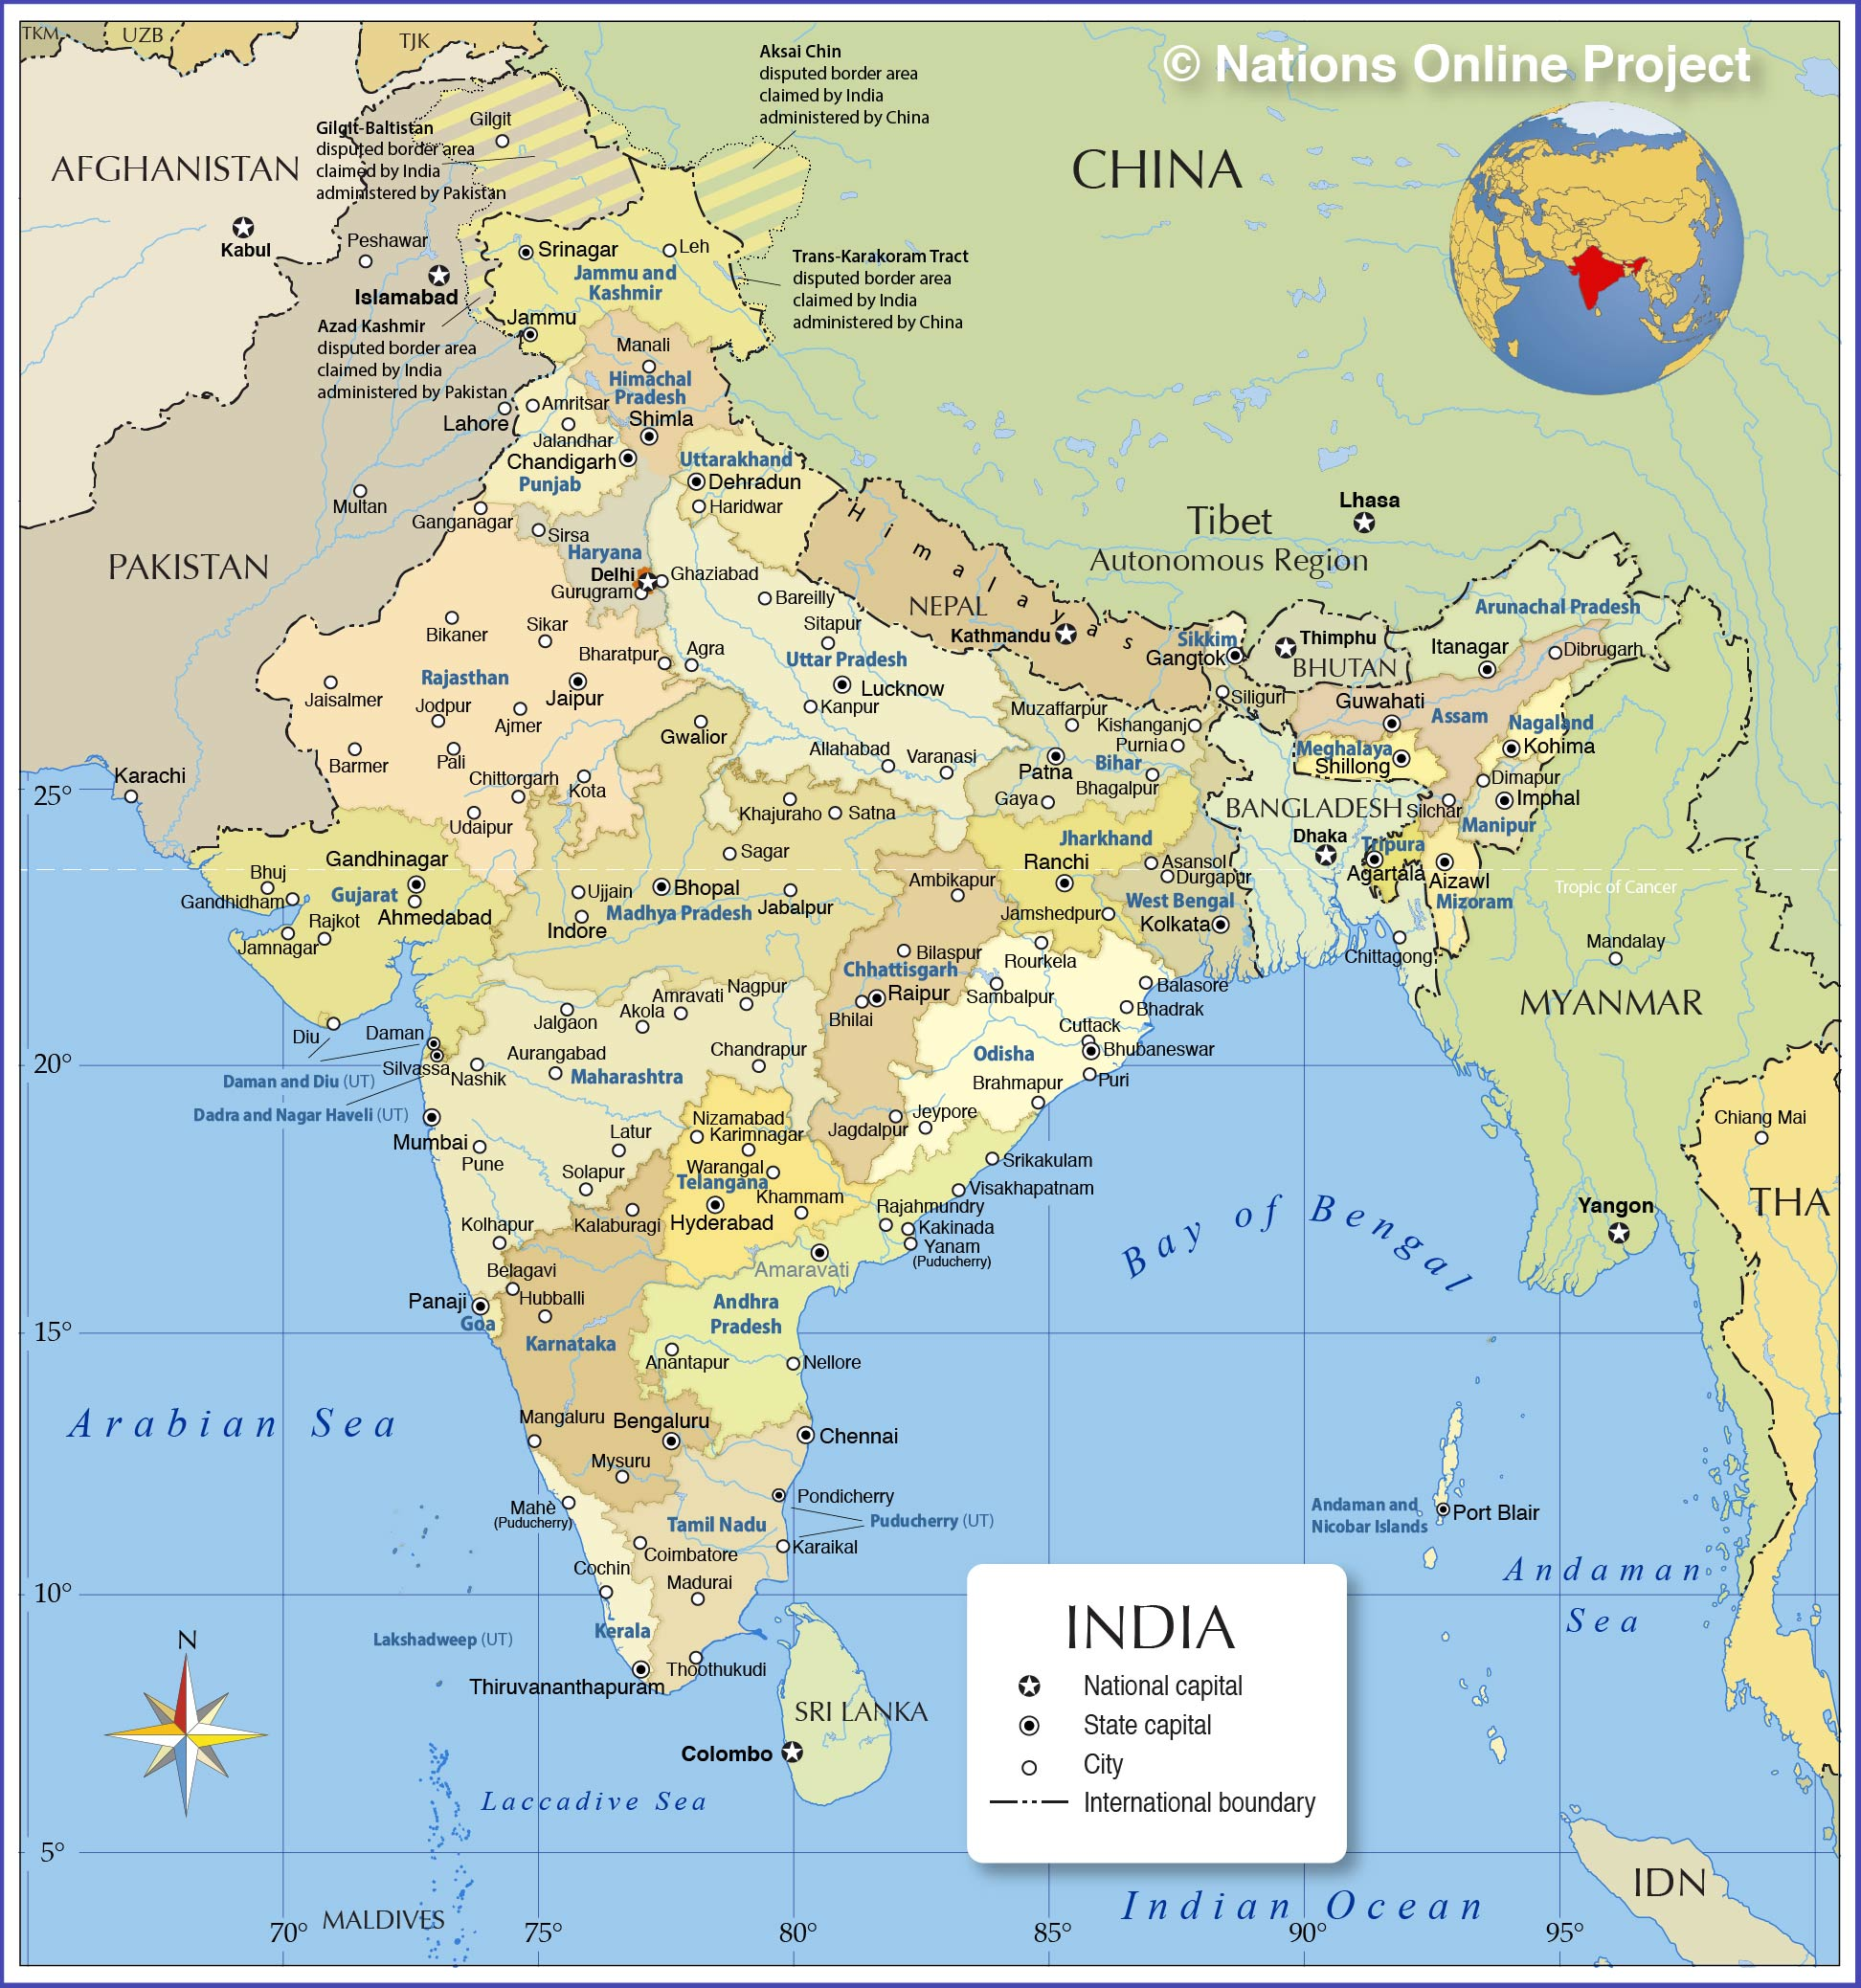 Political Map of India\'s States - Nations Online Project